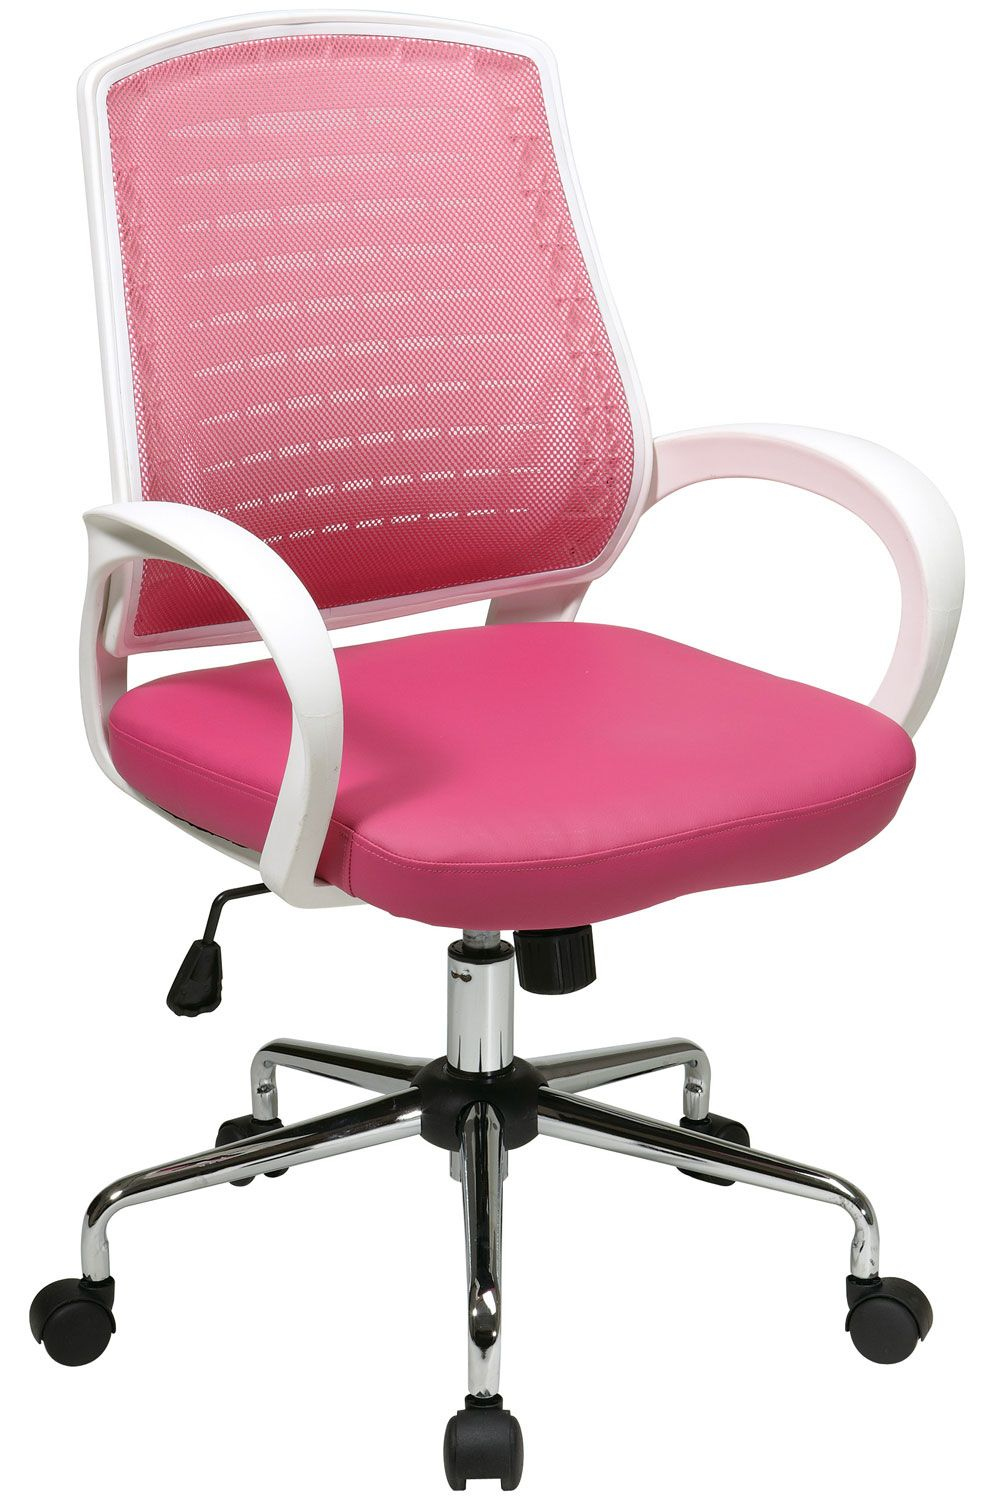 55 Office Chairs Pink Country Home Office Furniture Check More